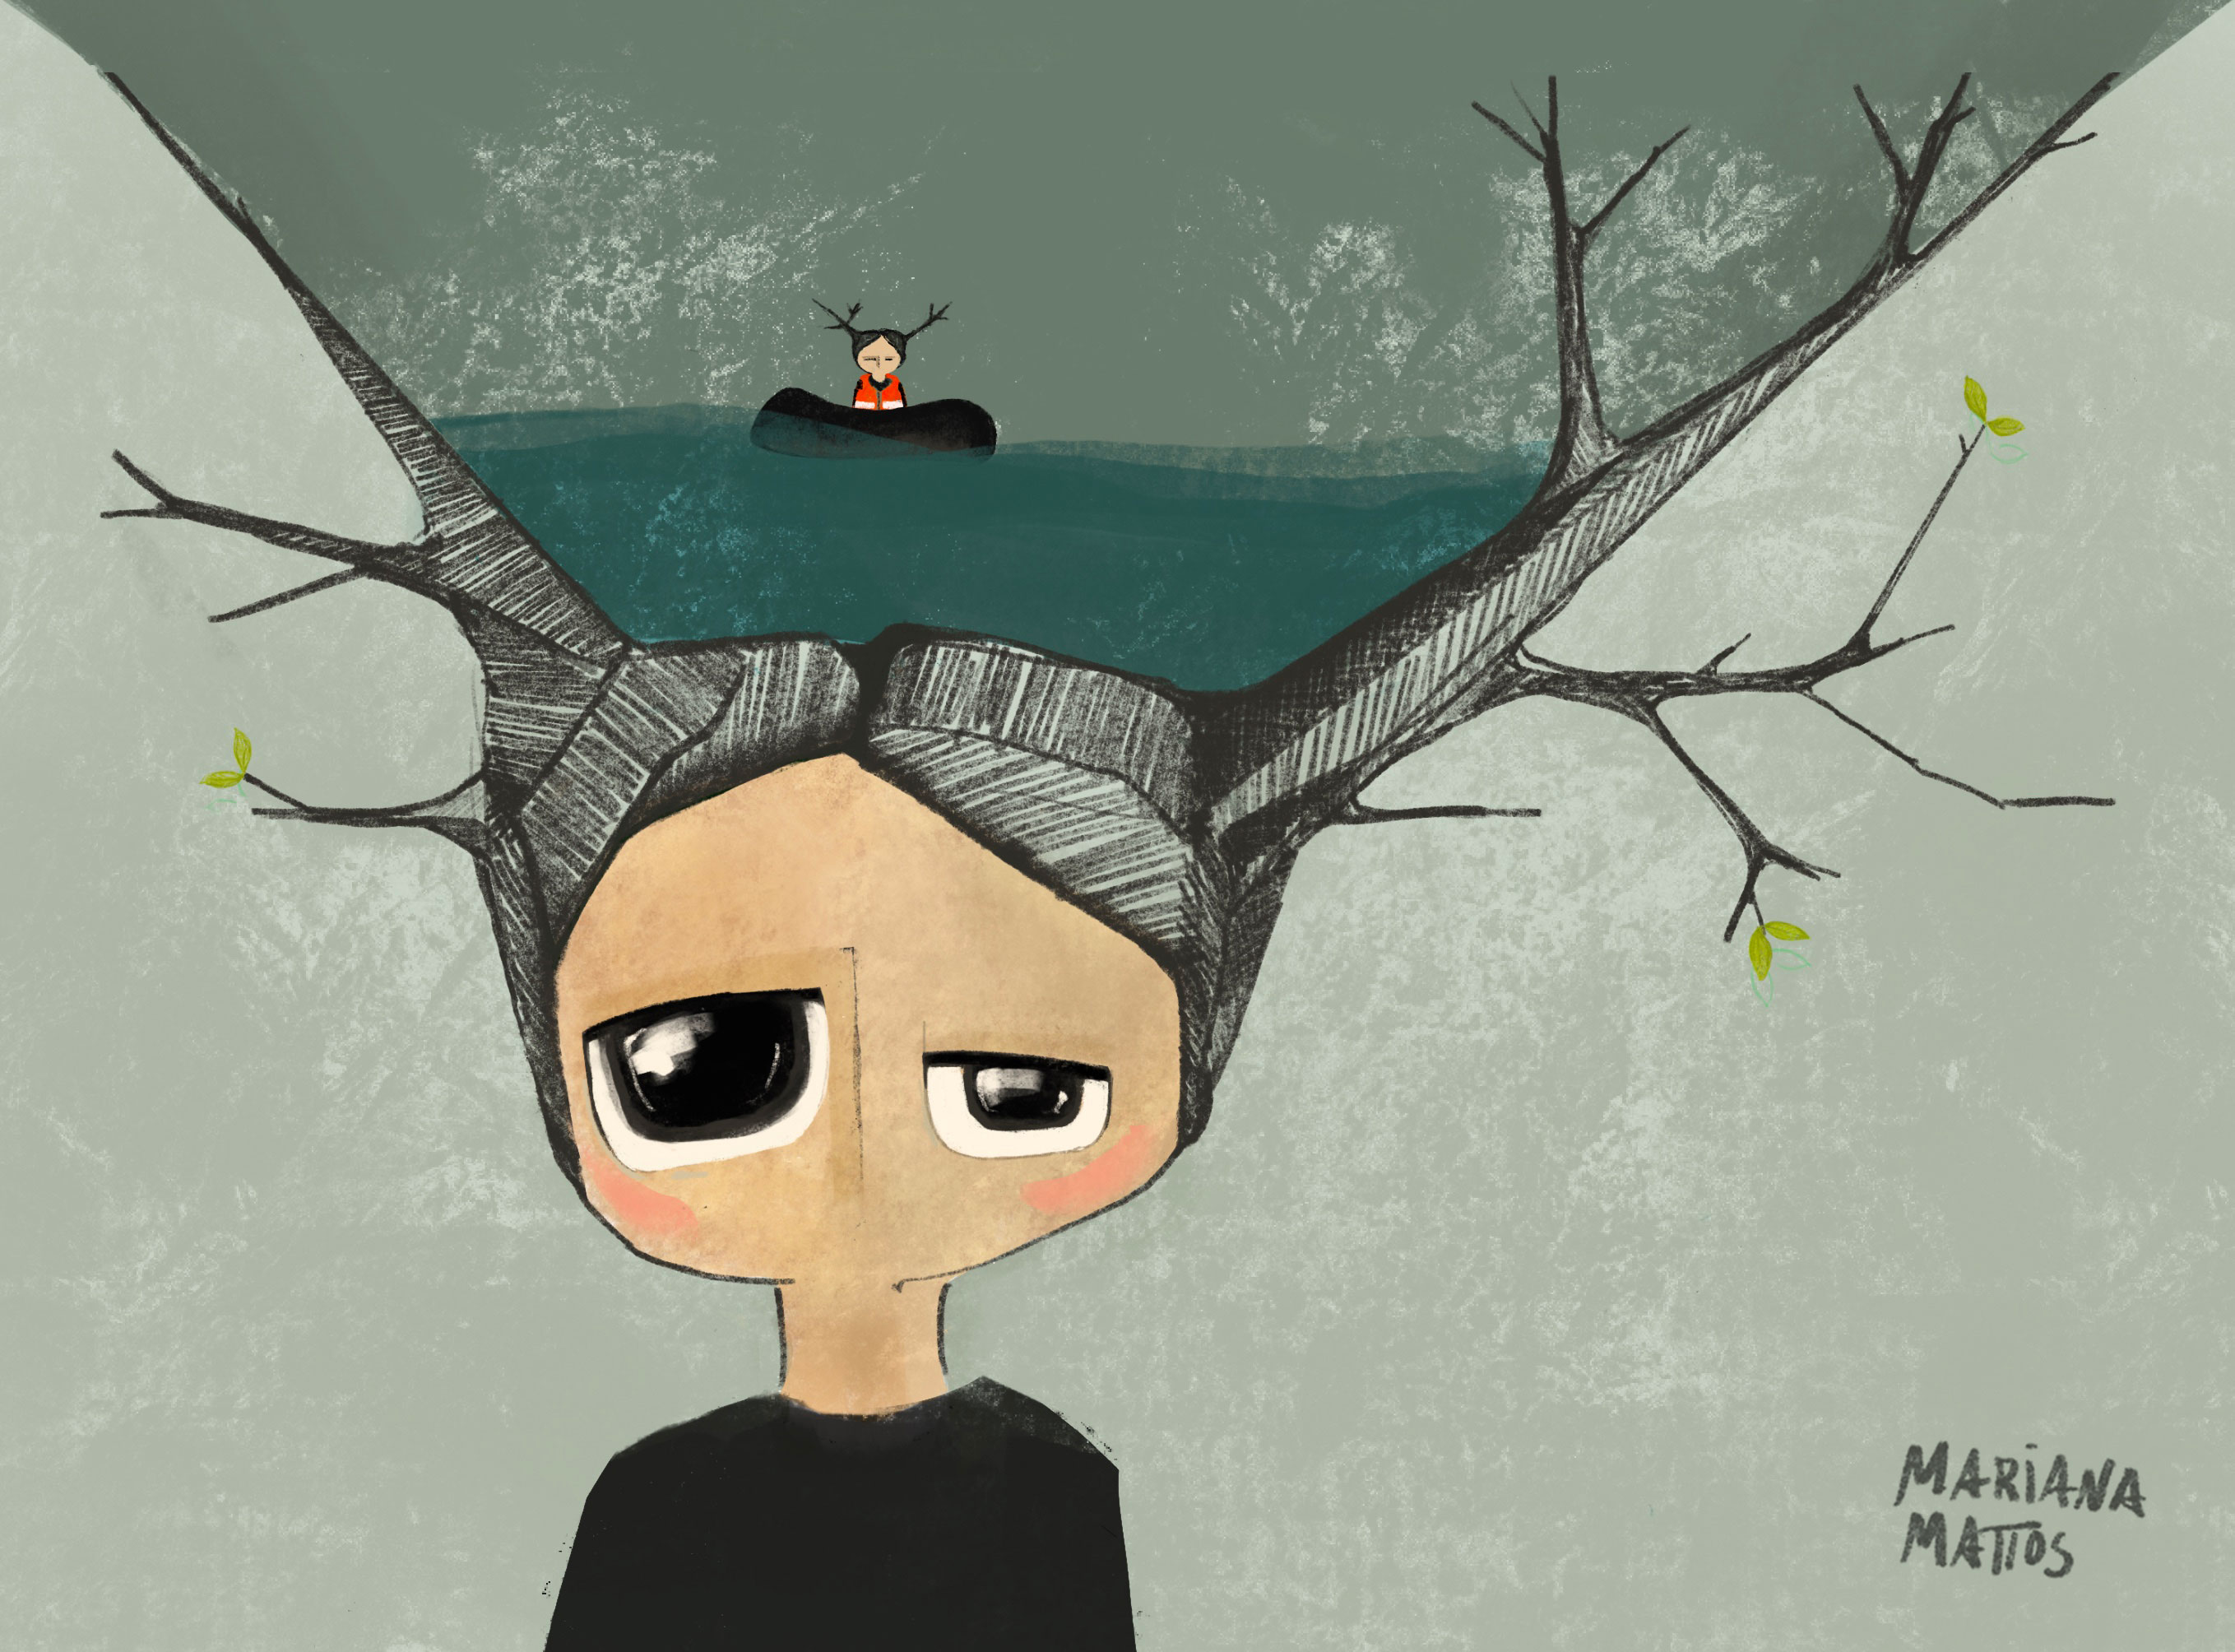 Where is my mind? (1)